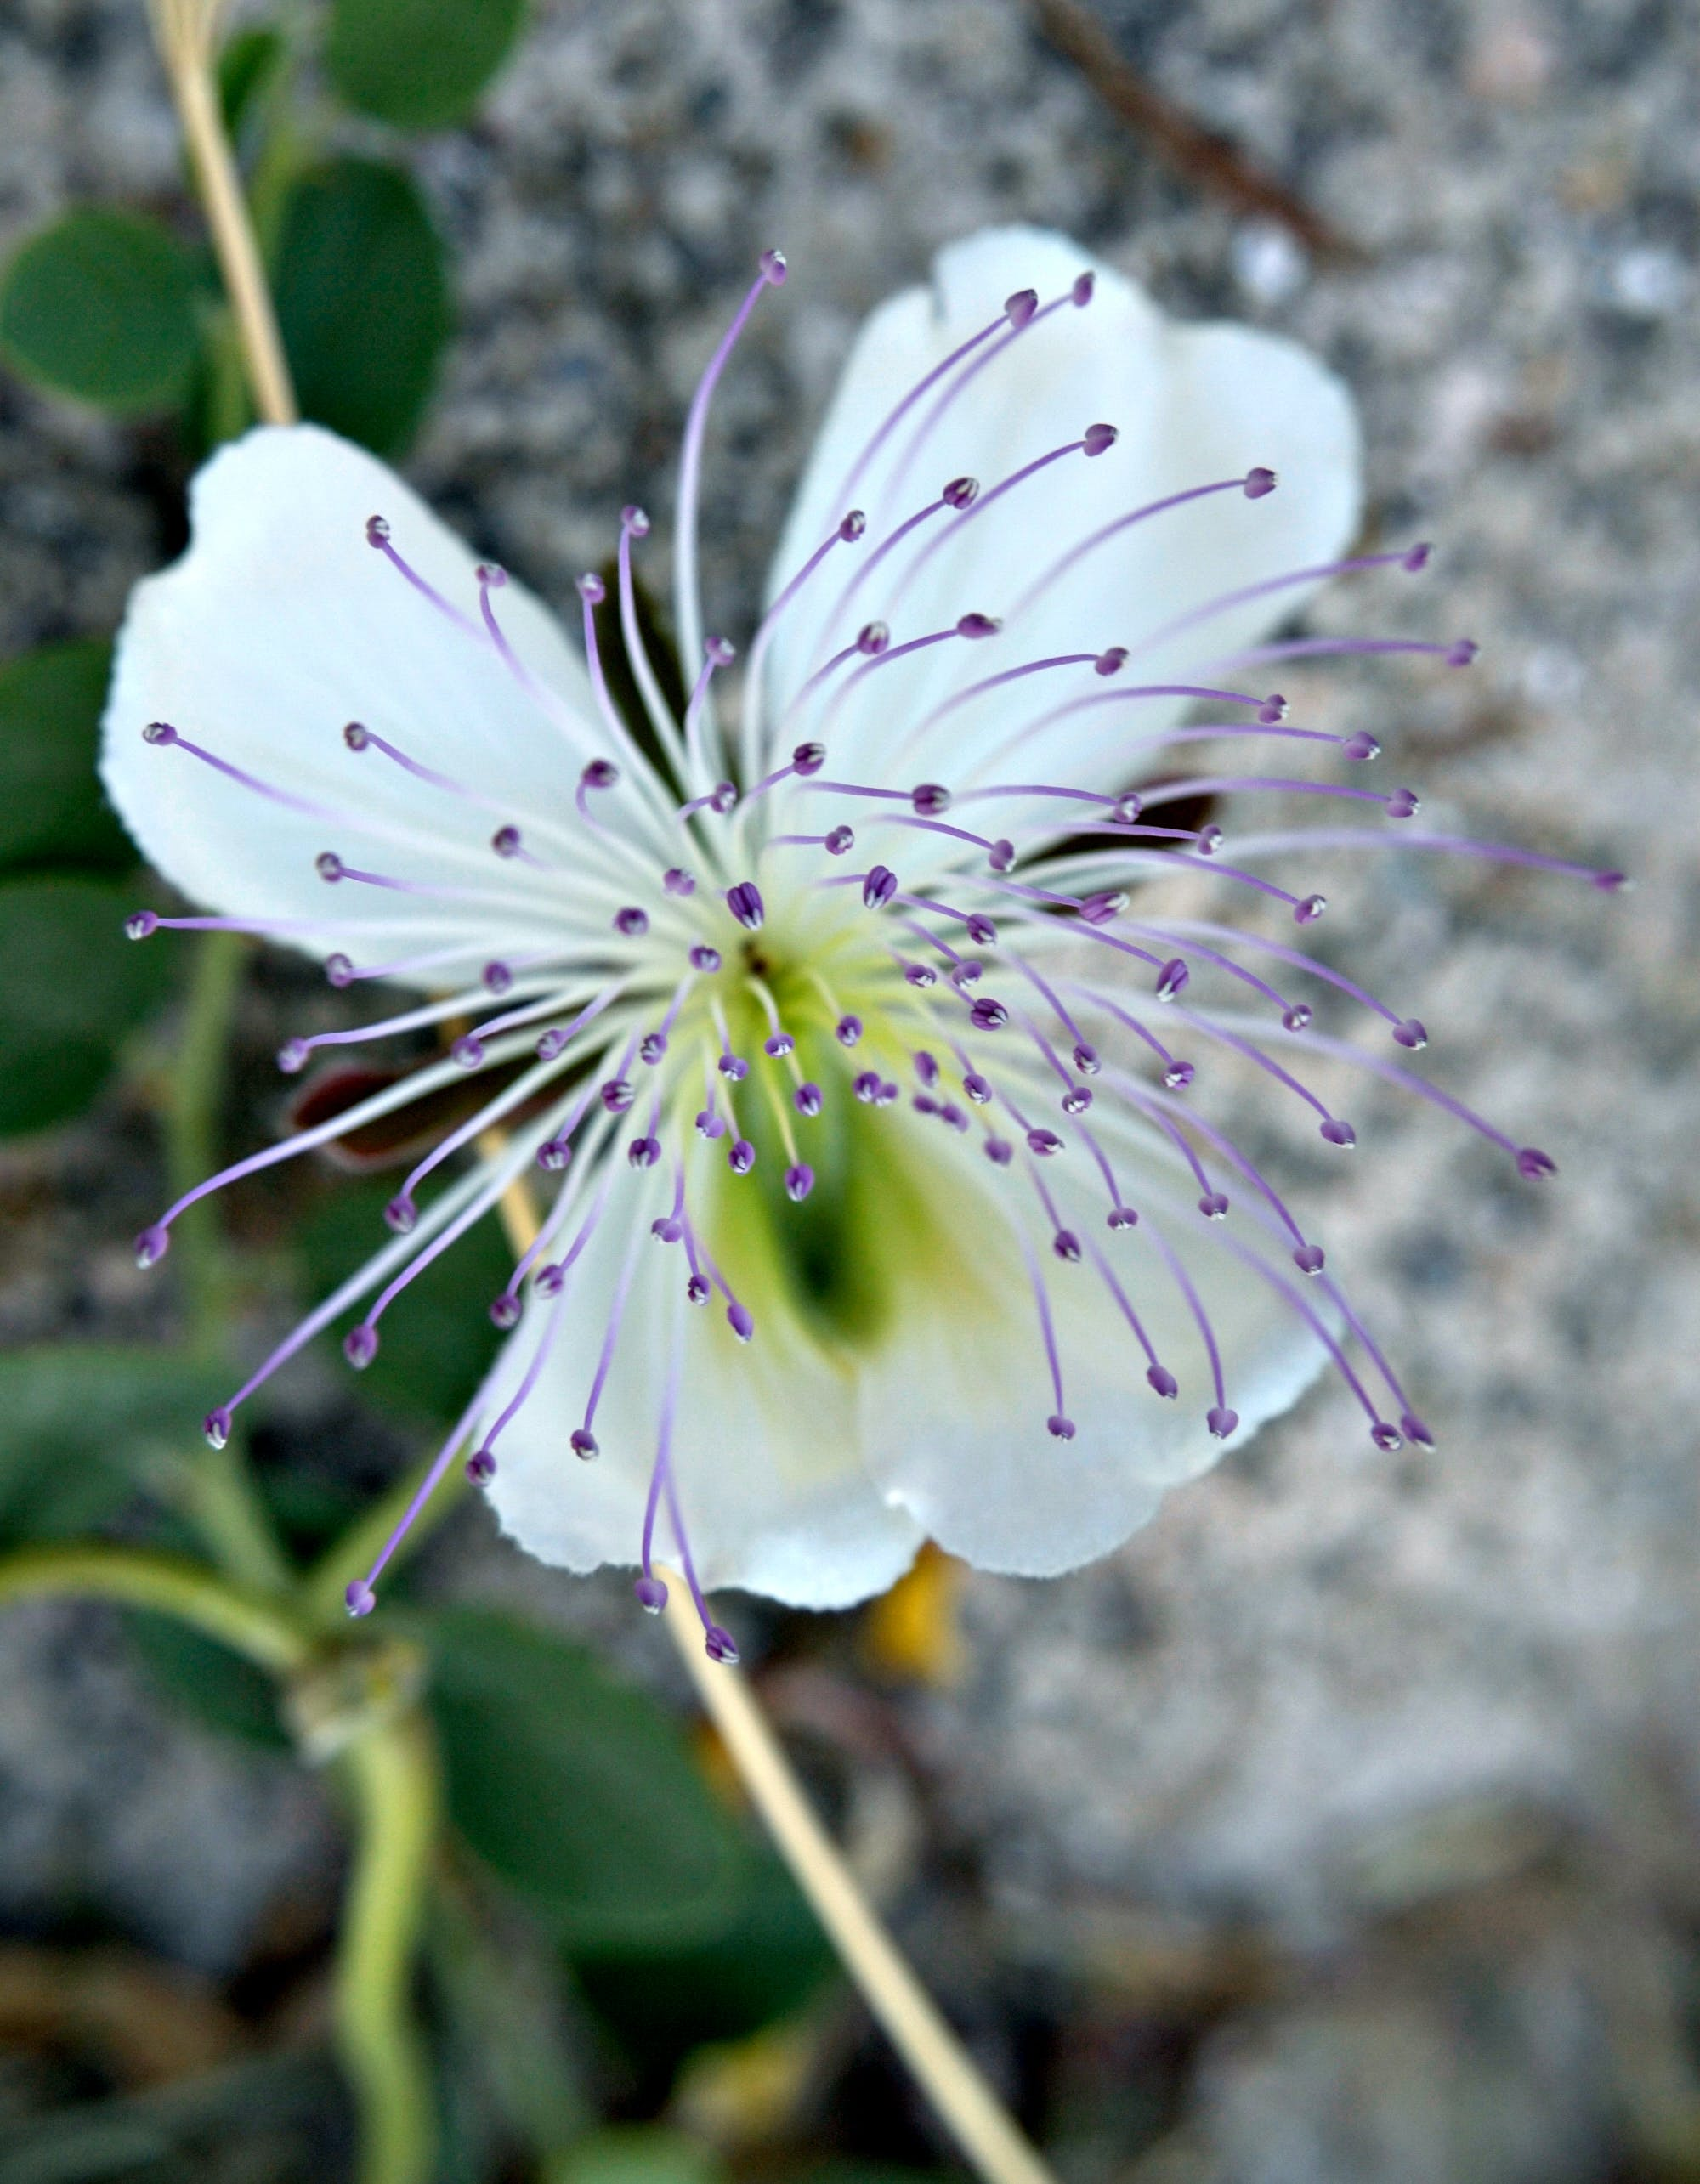 Close-Up Phorography of White and Purple Flower